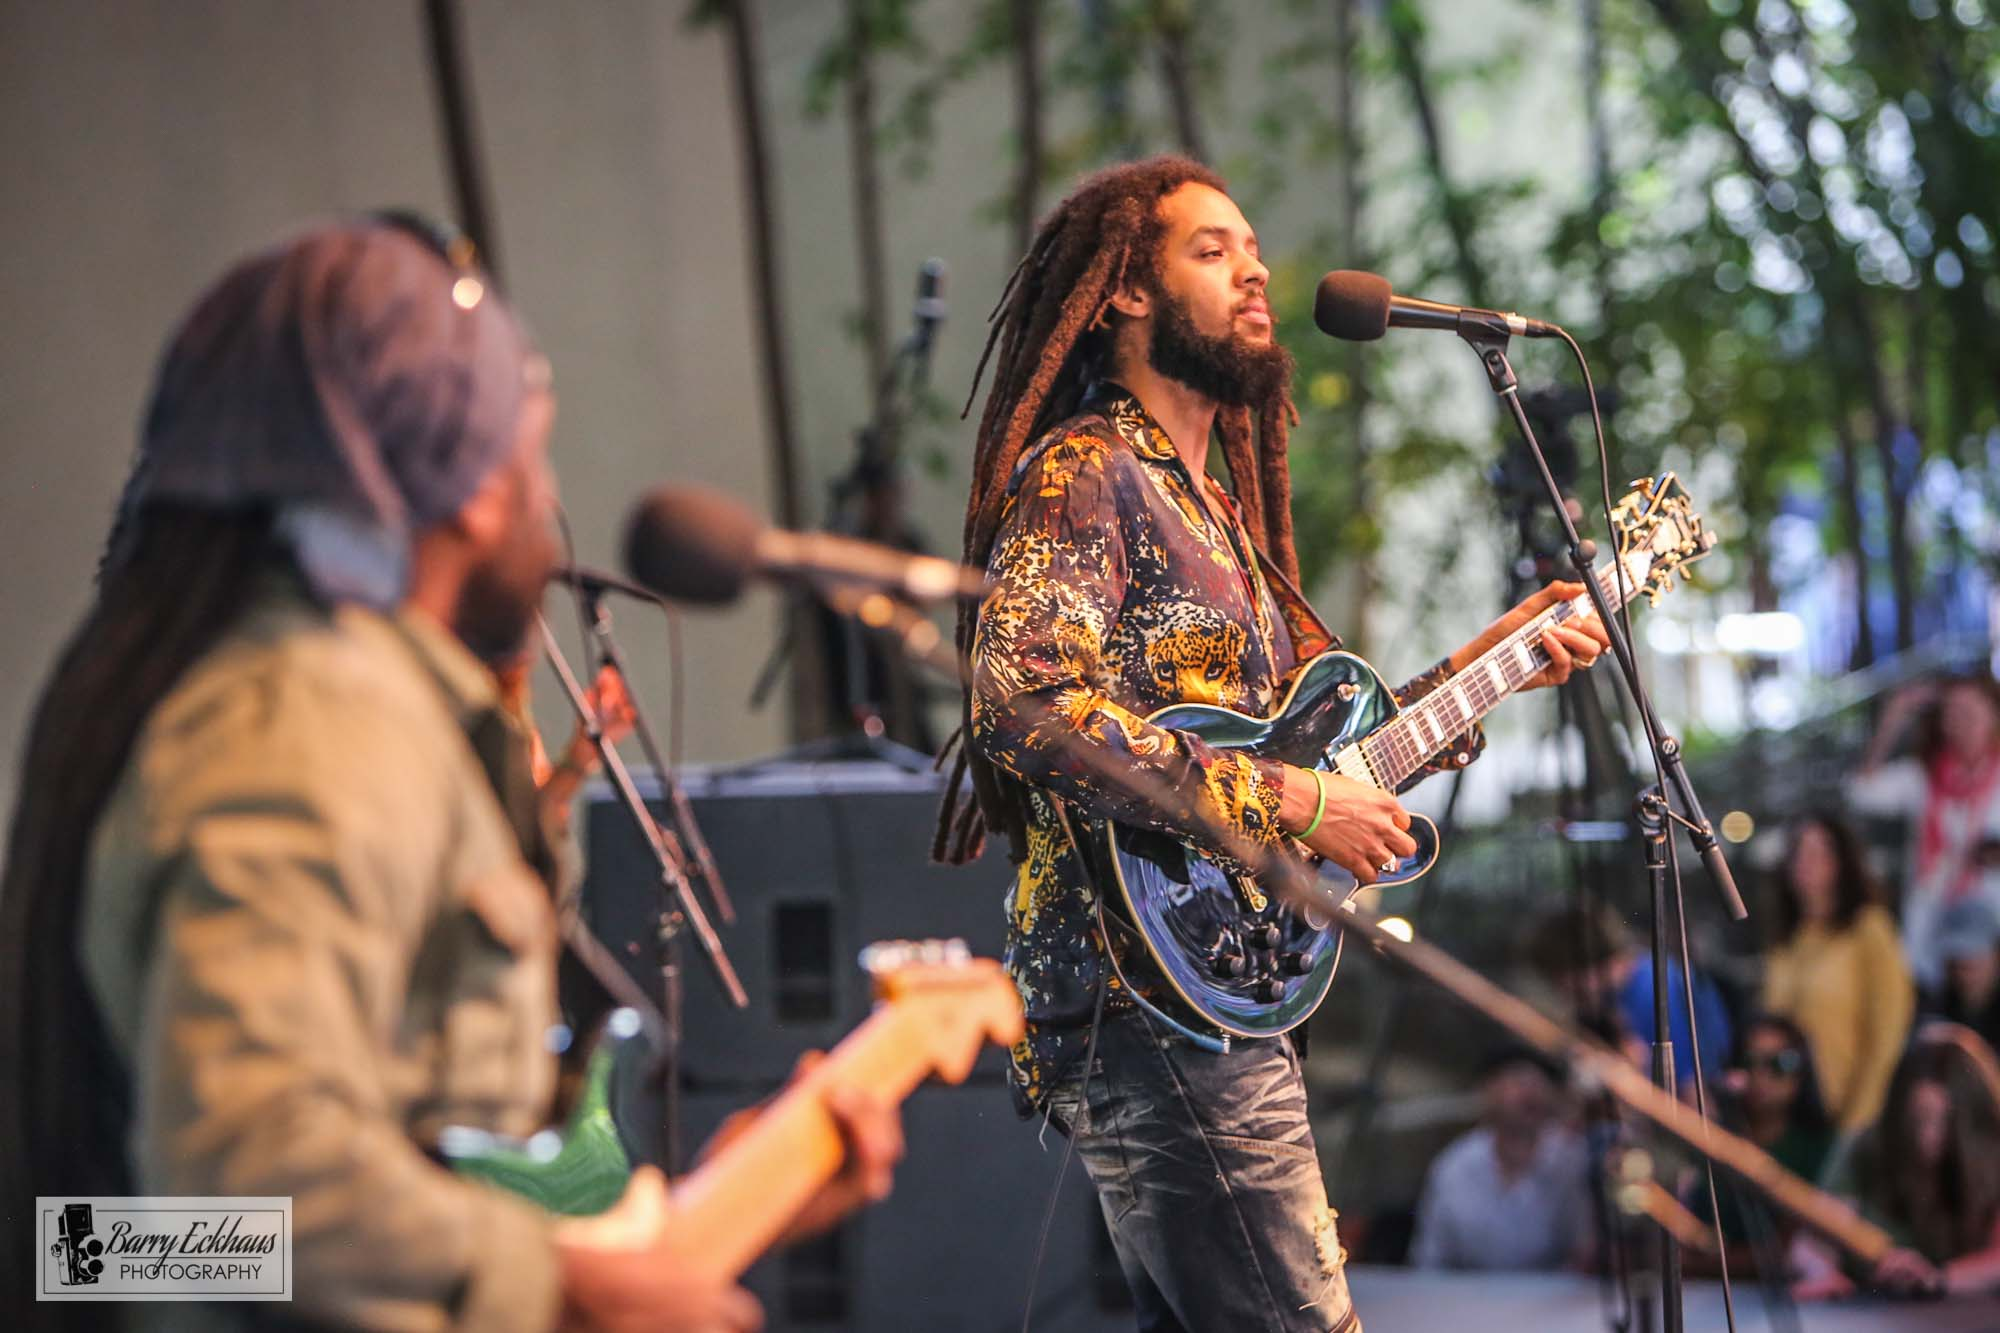 Concert photography of The Wailers at the Ford Amphitheatre, Vail, Colorado.